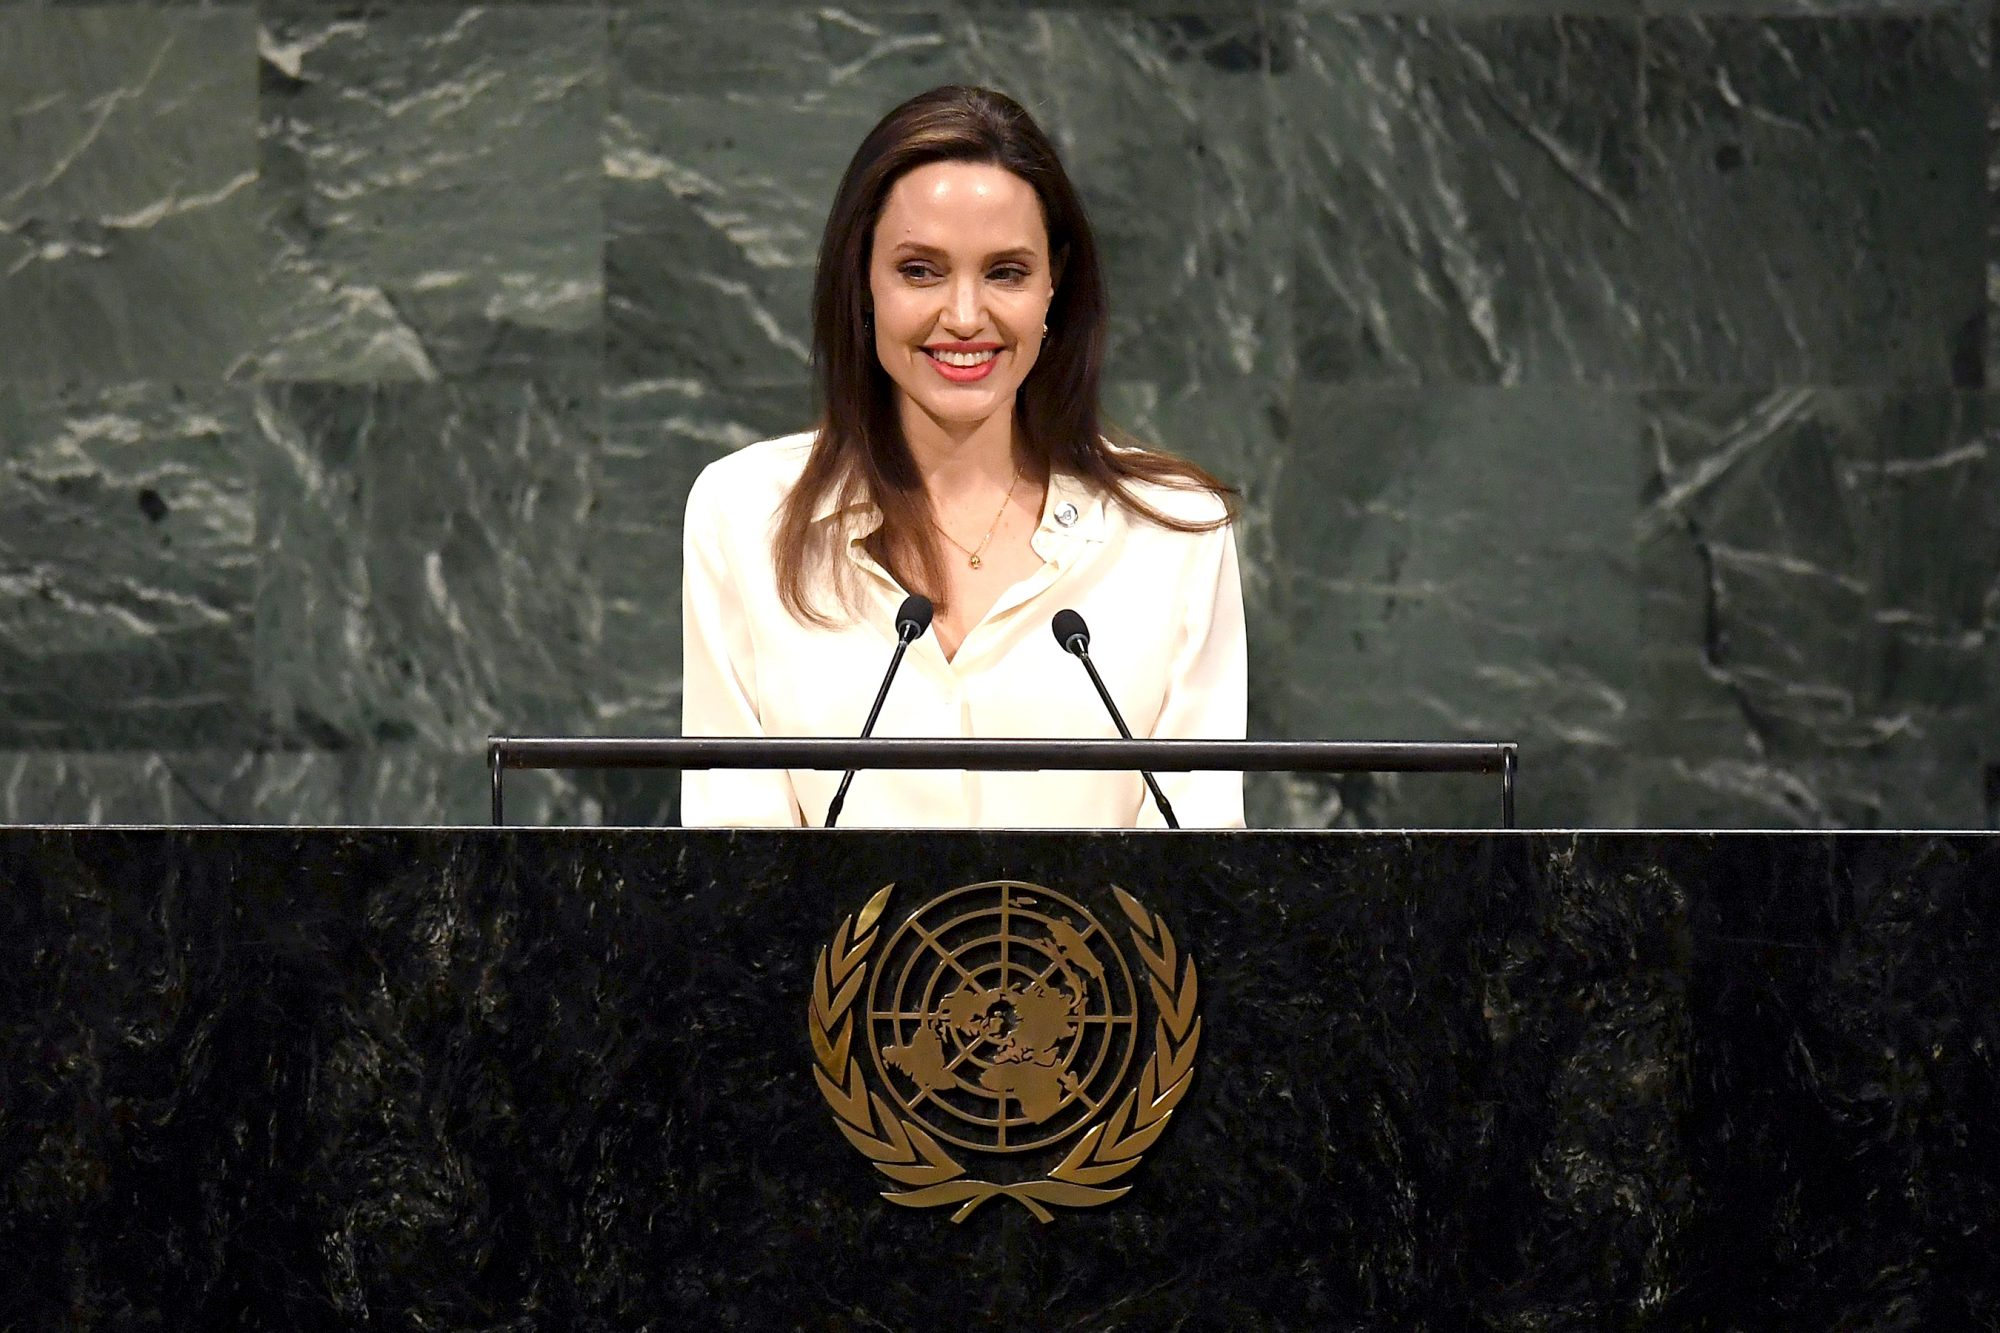 Angelina Jolie addresses the UN about army conflict